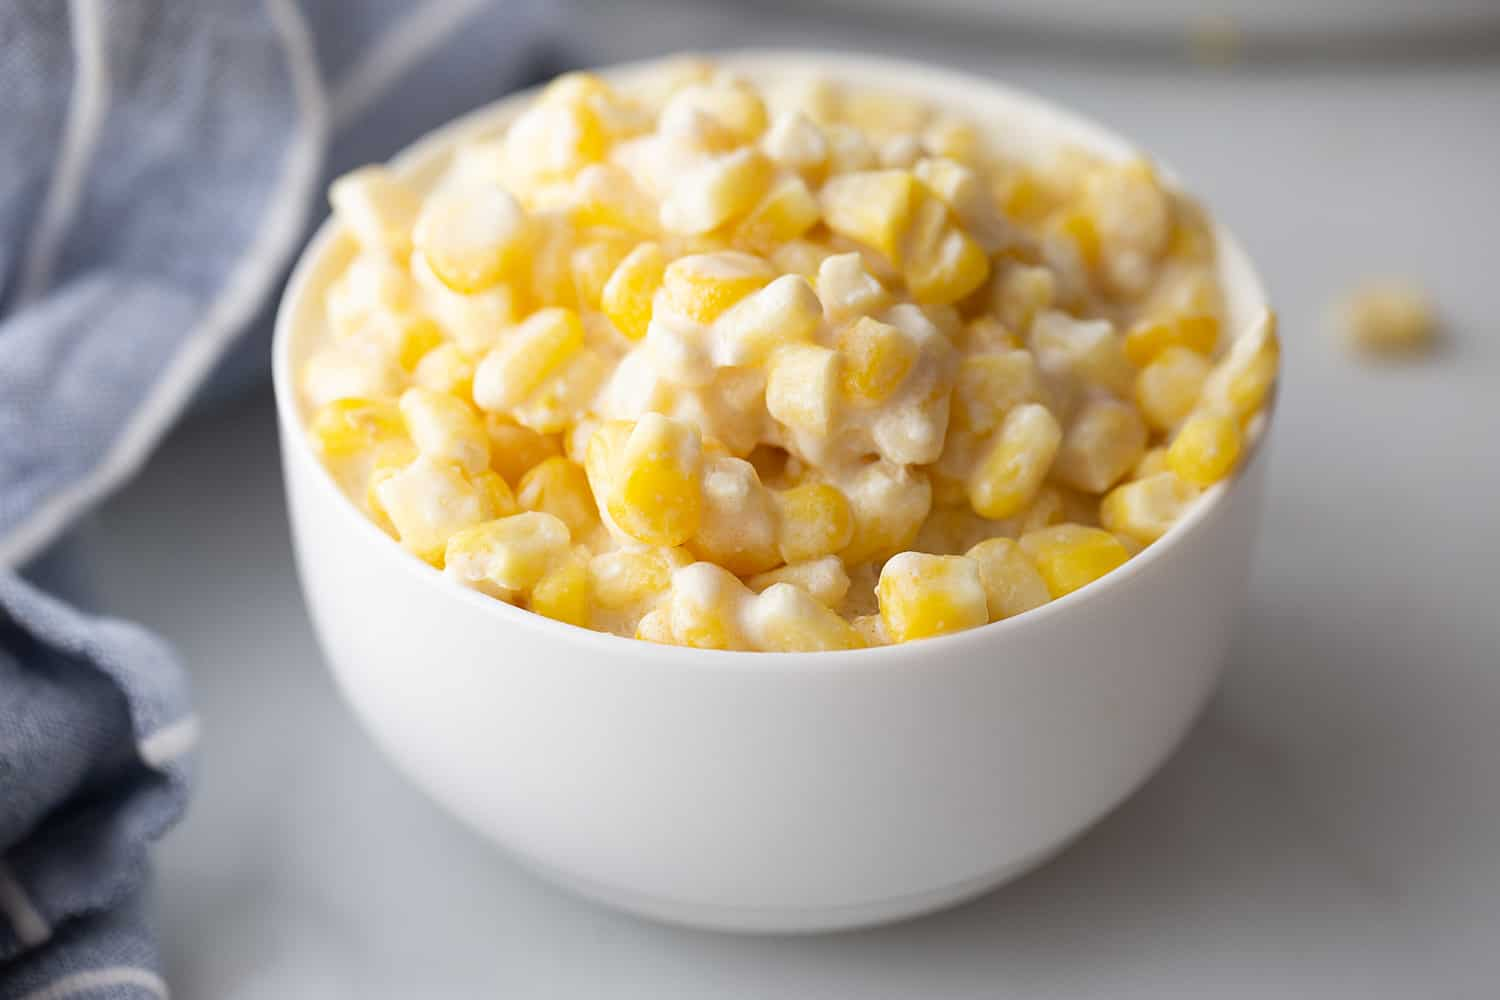 Easy Slow Cooker Creamed Corn - Ready for a side dish that's sure to please everyone? Try this easy, creamy, extra yummy slow cooker creamed corn! #creamedcorn #crockpot #slowcooker #sidedish #easyrecipe #slowcookercreamedcorn #corn #halfscratched